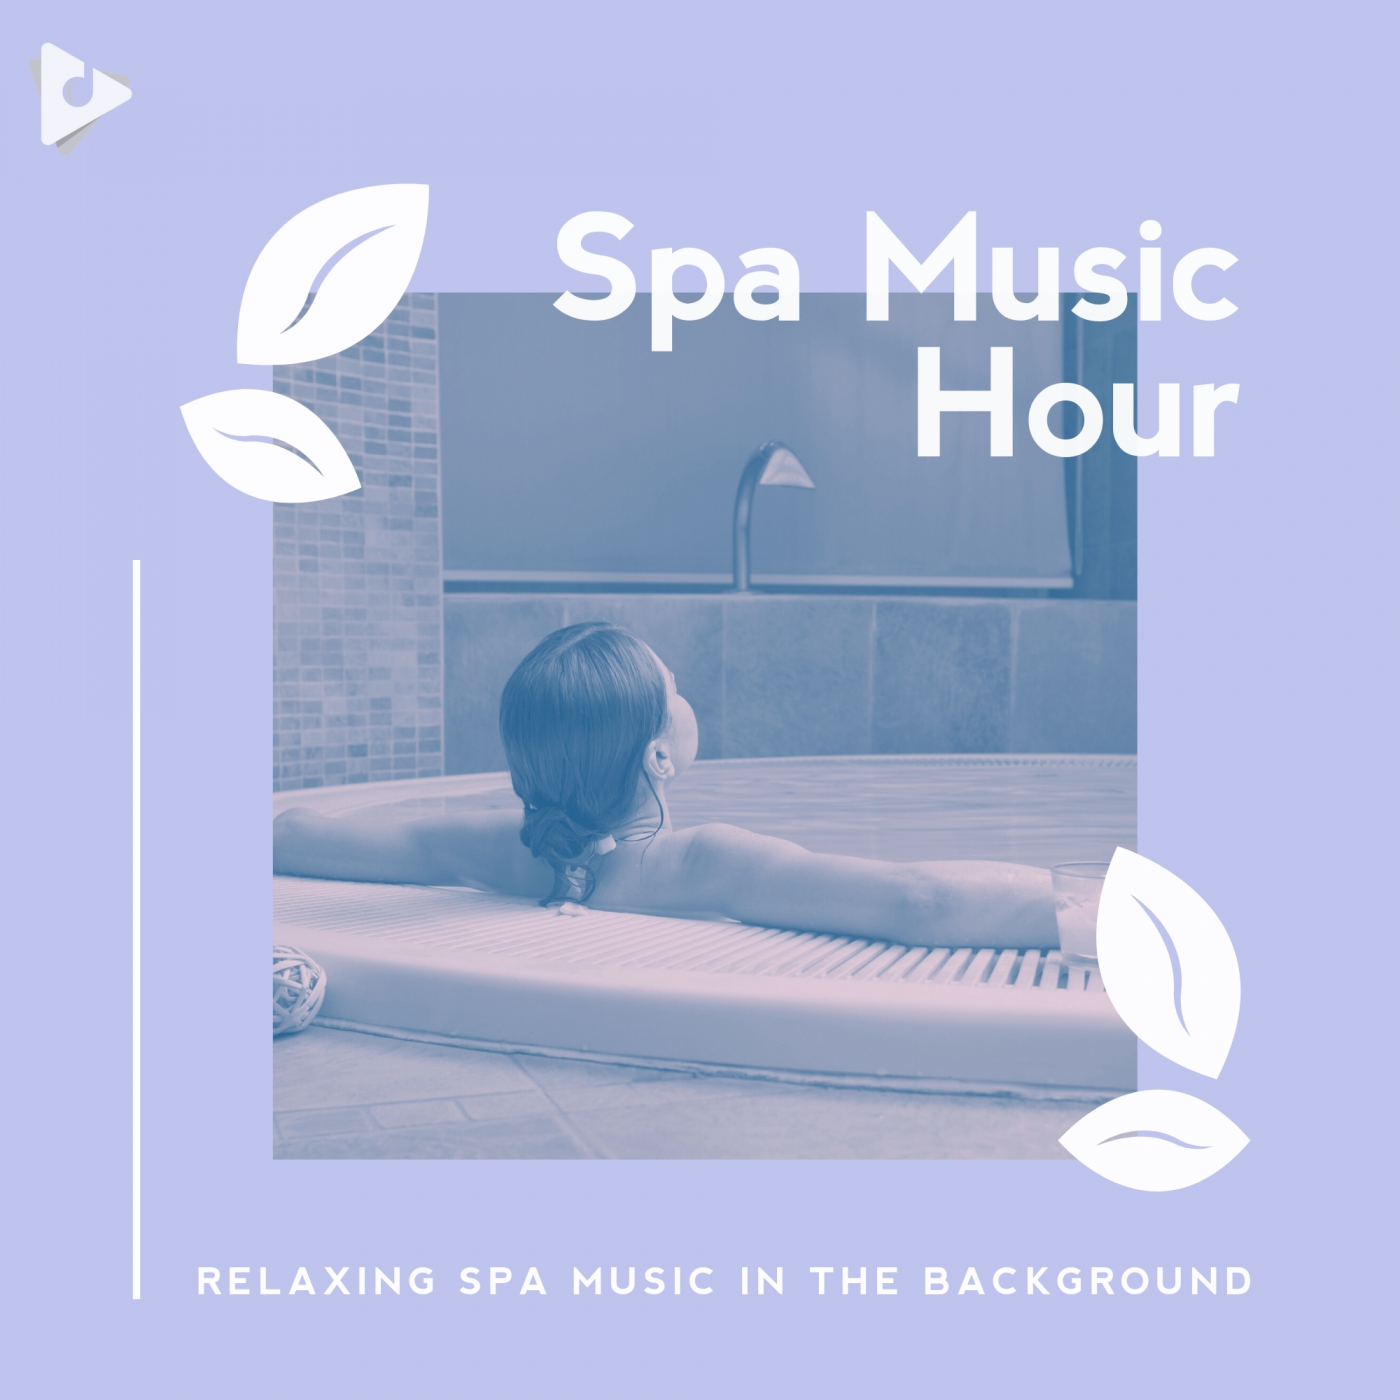 Relaxing Spa Music in the Background